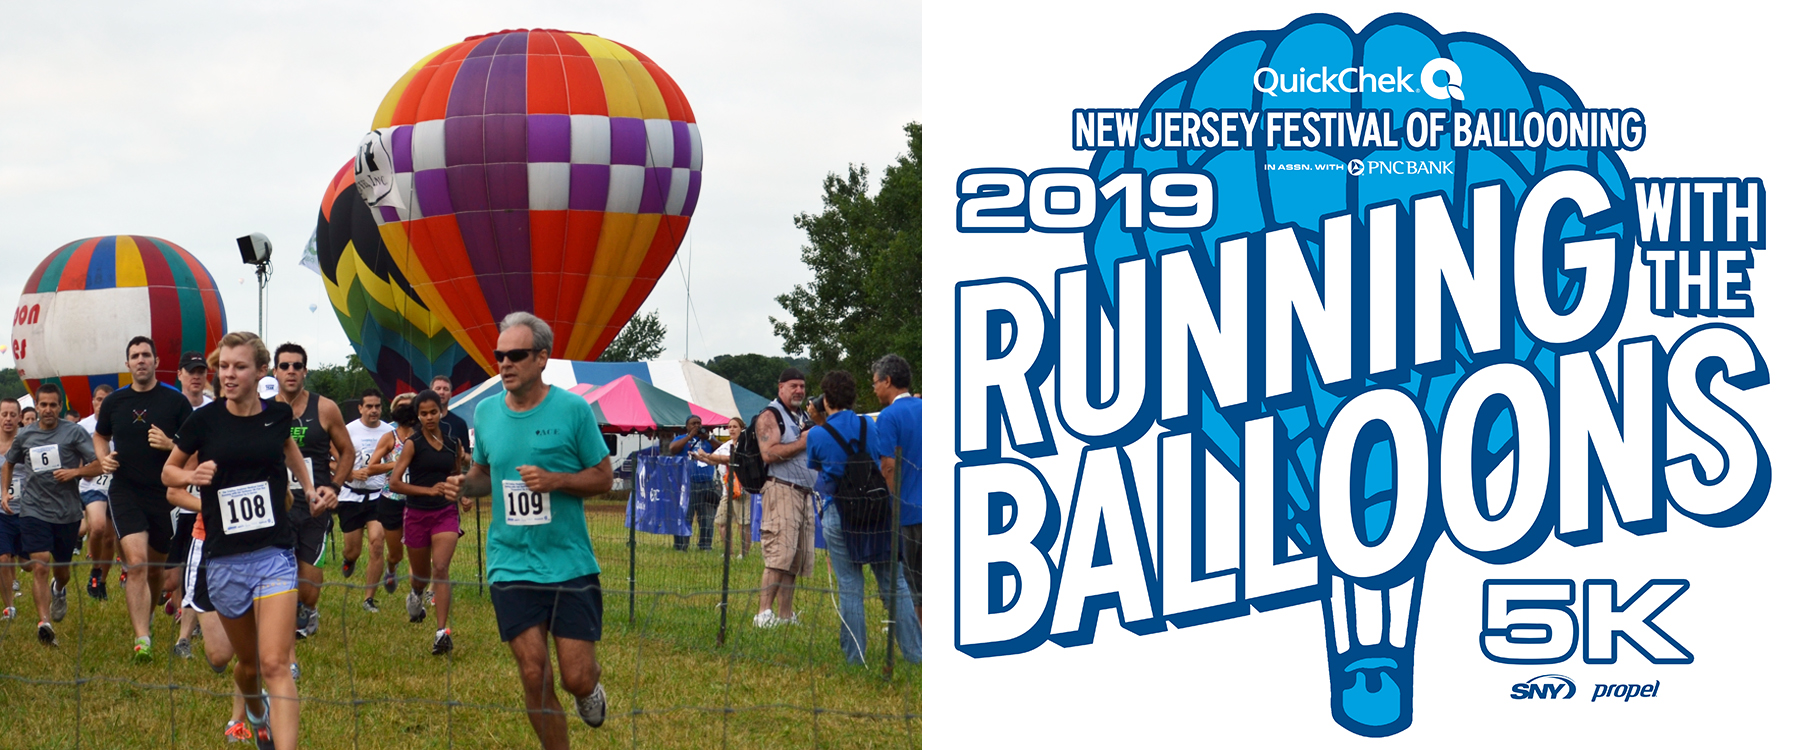 The 38th Annual QuickChek New Jersey Festival of Ballooning